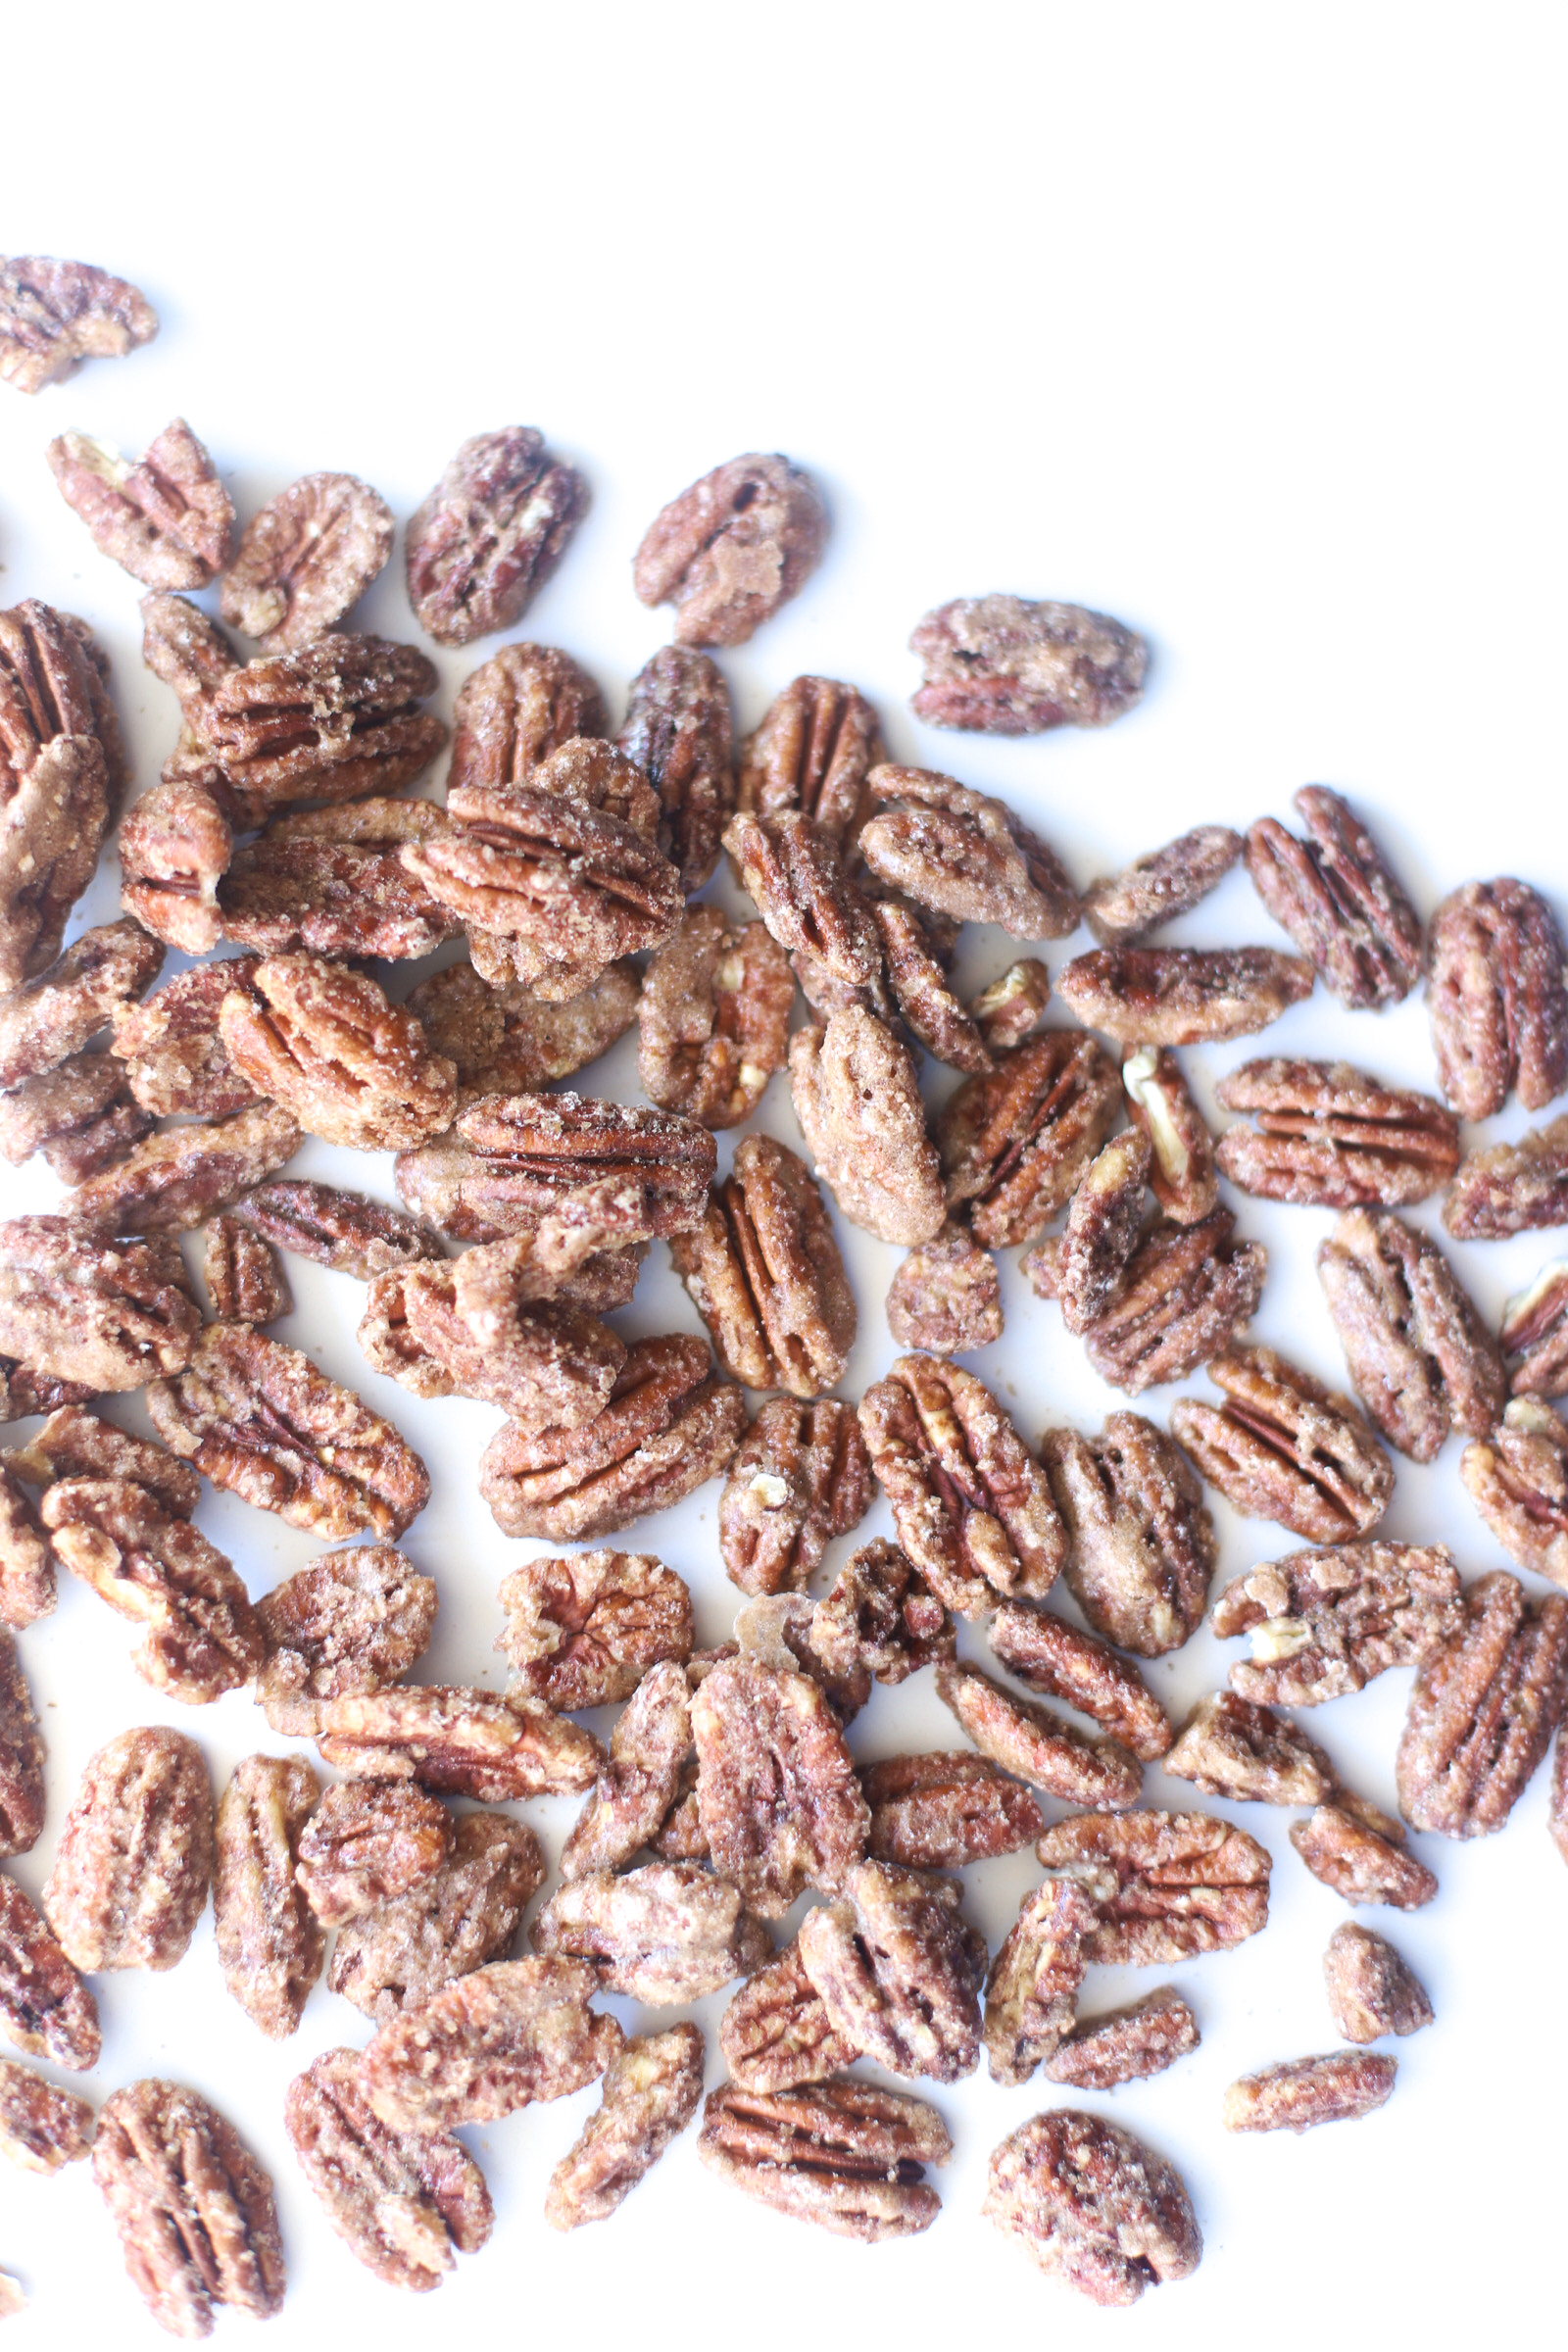 Candied Pecans are sweet, crunchy, and perfect for holiday parties and homemade gifts! These cinnamon-sugar roasted and spiced nuts are also super easy to make, especially in big batches. Click through for the recipe. | glitterinc.com | @glitterinc